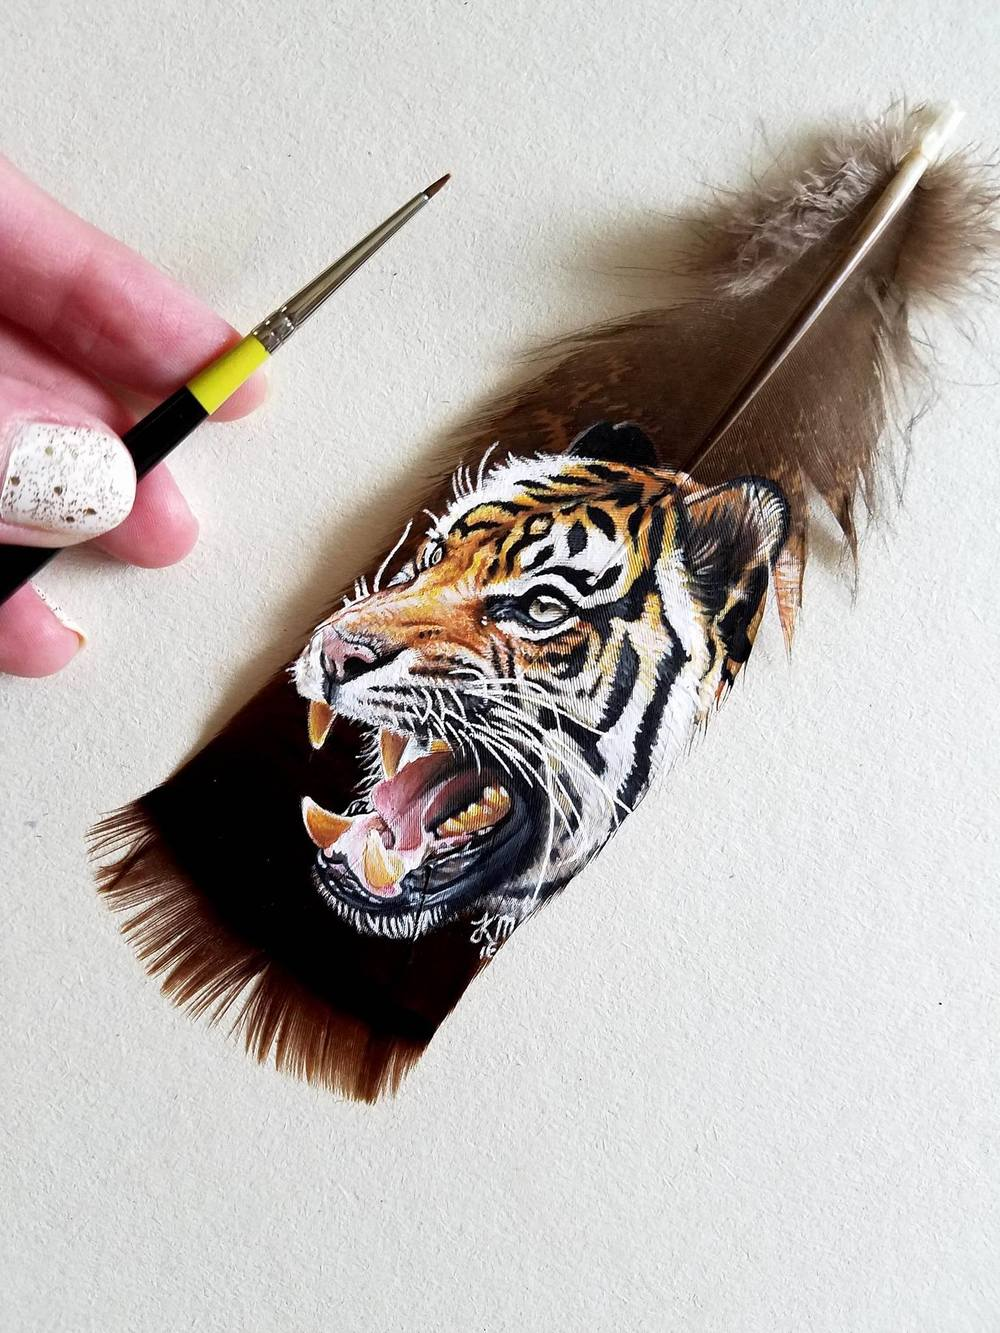 Tiger on a wild turkey feather